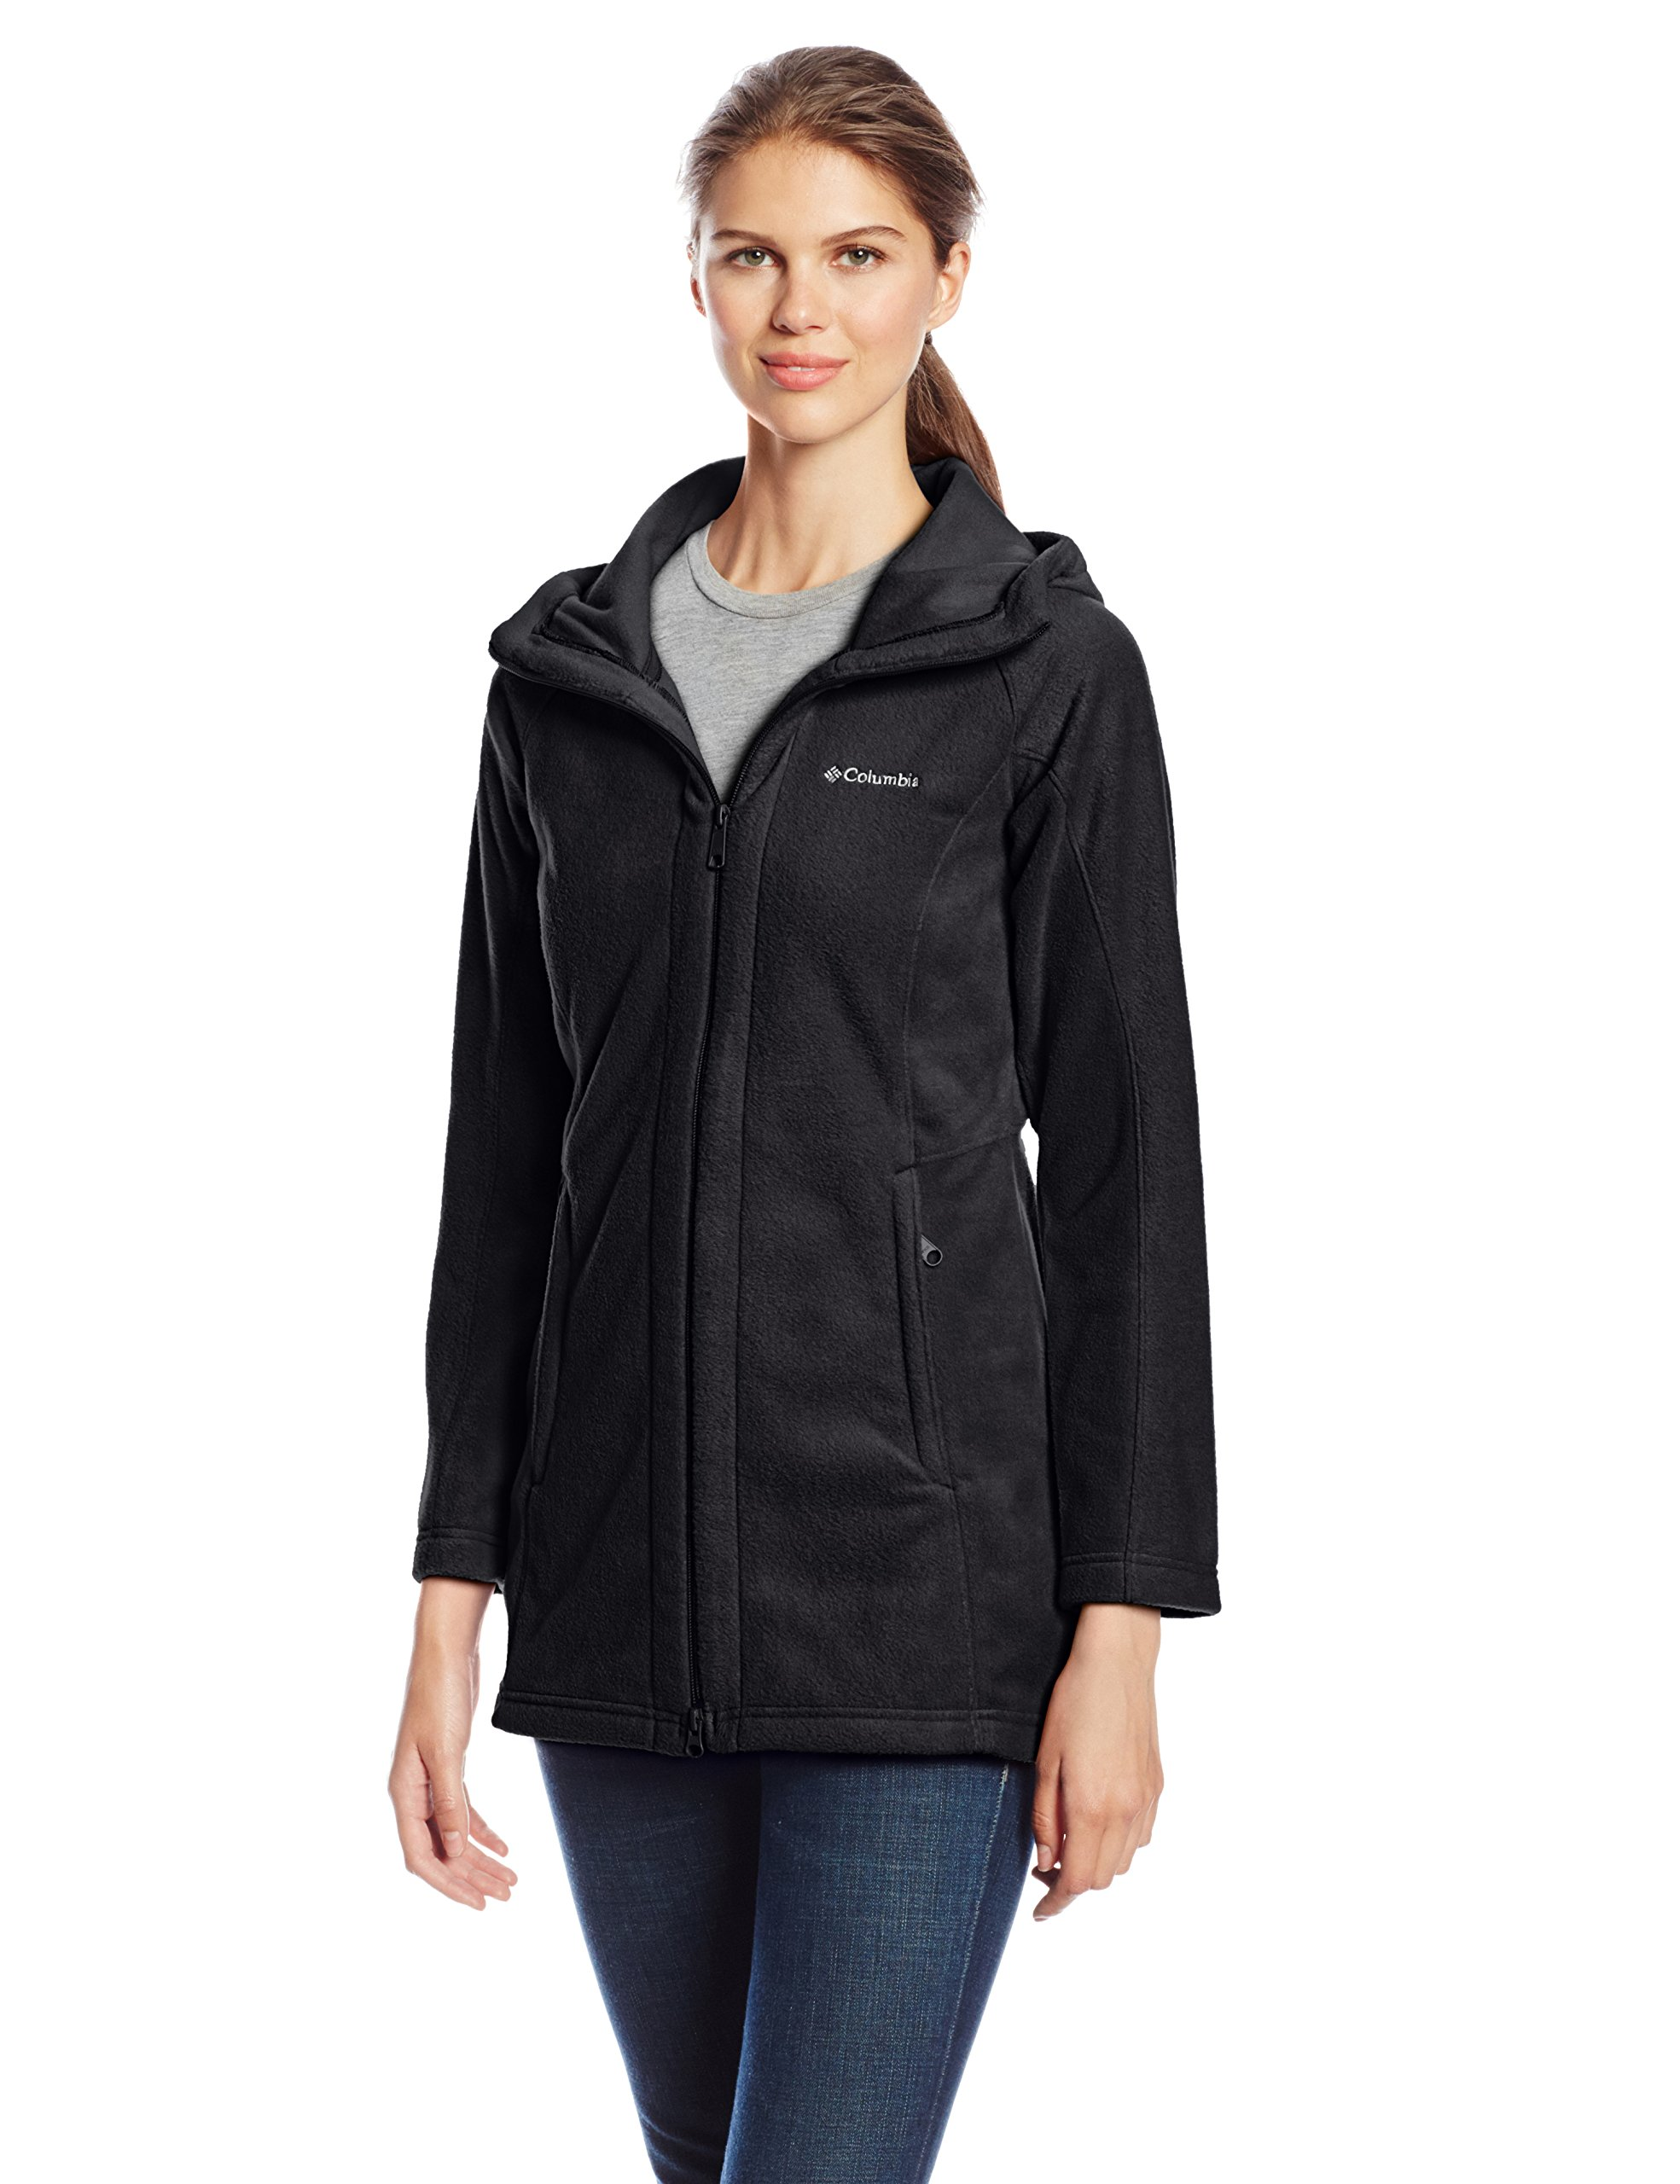 Columbia Women's Benton Springs II Long Hoodie, Black, X-Large